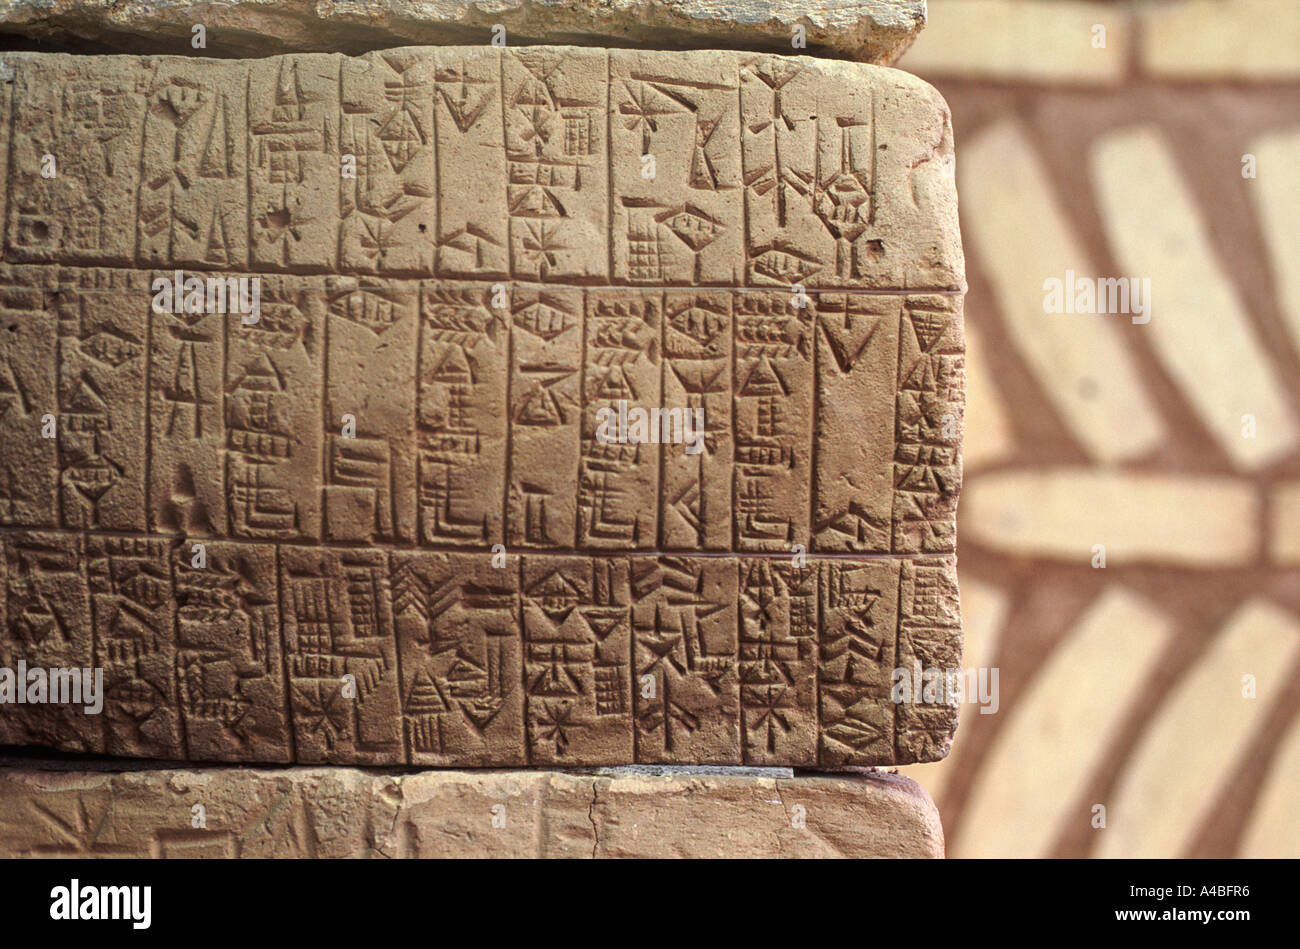 Ancient Sumer Stock Photos & Ancient Sumer Stock Images - Alamy